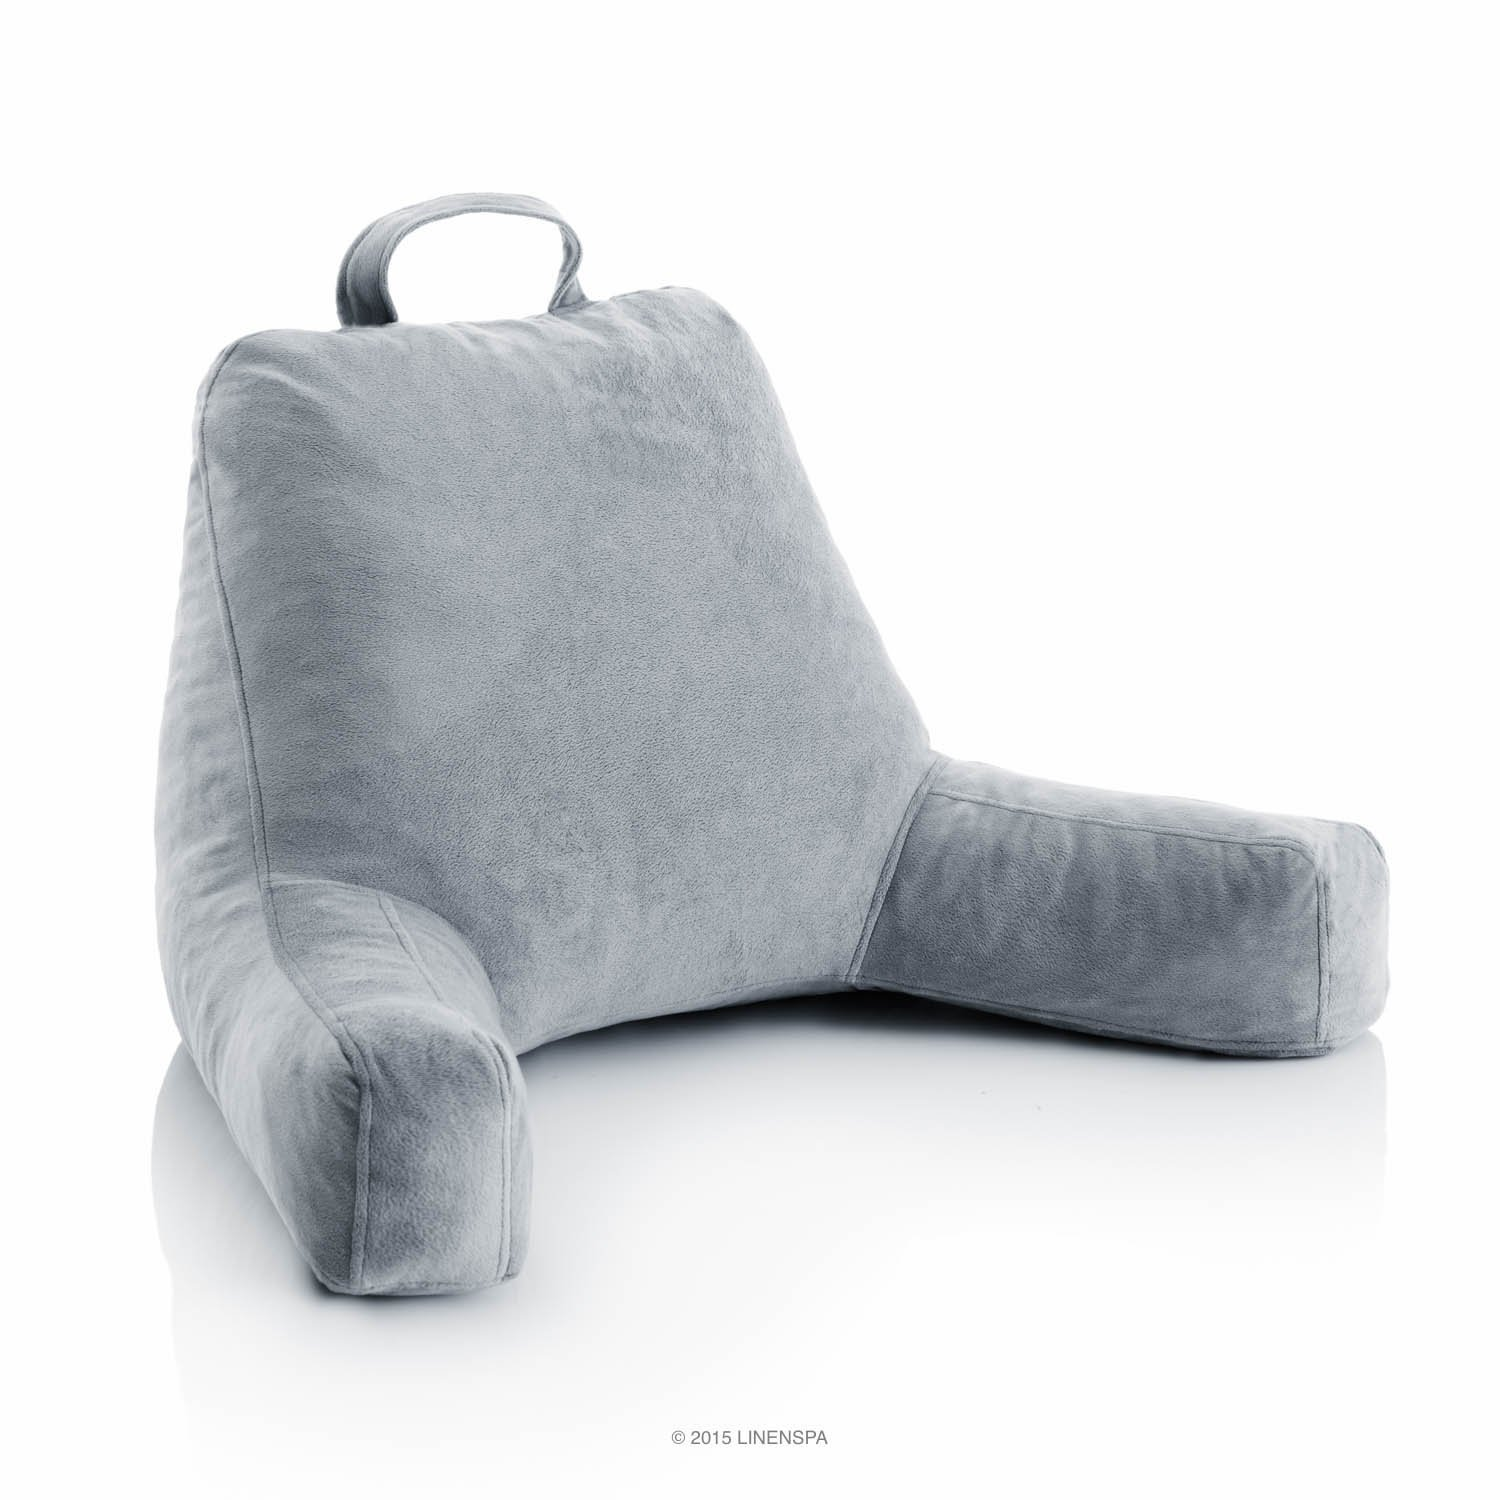 Husband Pillow Bed Bath and Beyond | Bed Pillow with Arms | Backrest Pillow Cover